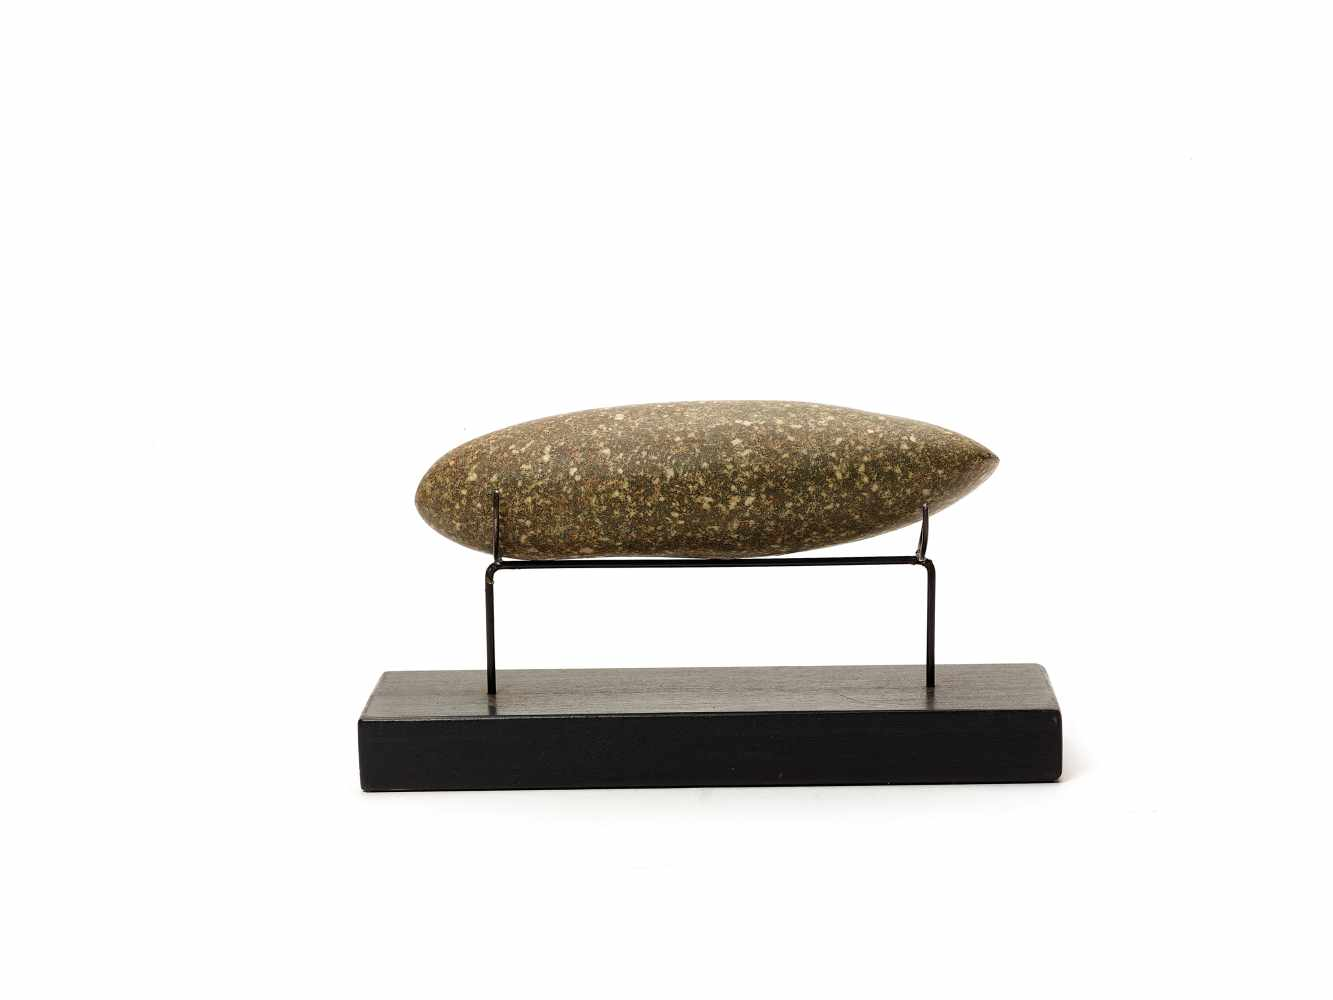 A NEOLITHIC STONE AXE HEAD – MALI Granite stoneMenaka town, Mali, Africa, Neolithic period (4000- - Image 3 of 3